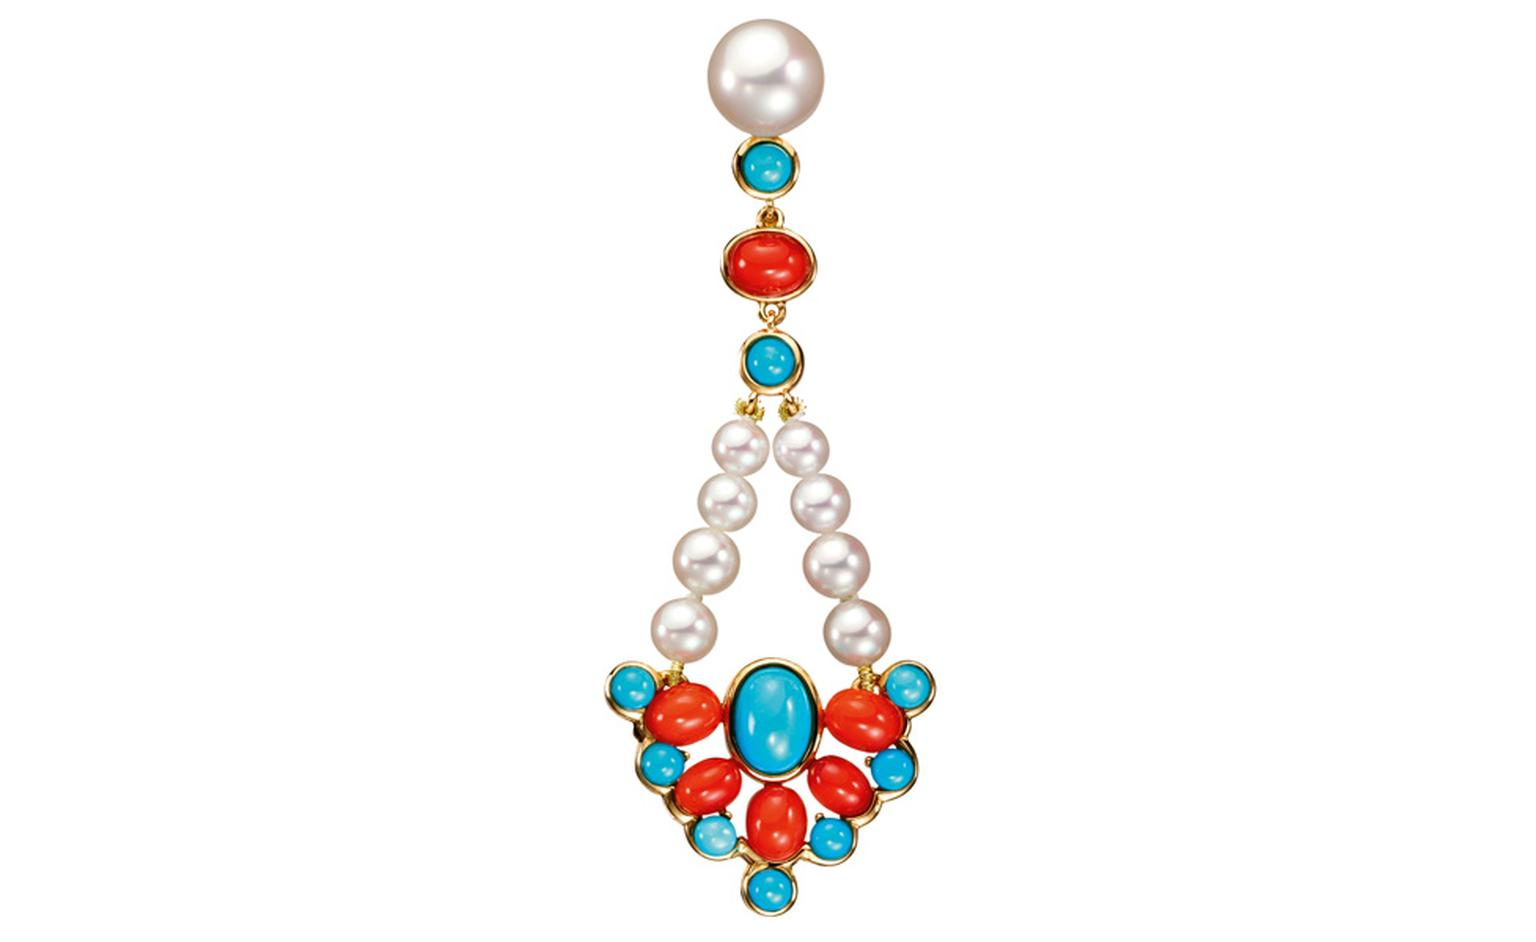 BOUCHERON. Paraggi earrings, set with round cultured pearls, round turquoise and oval red corals, on white gold. POA